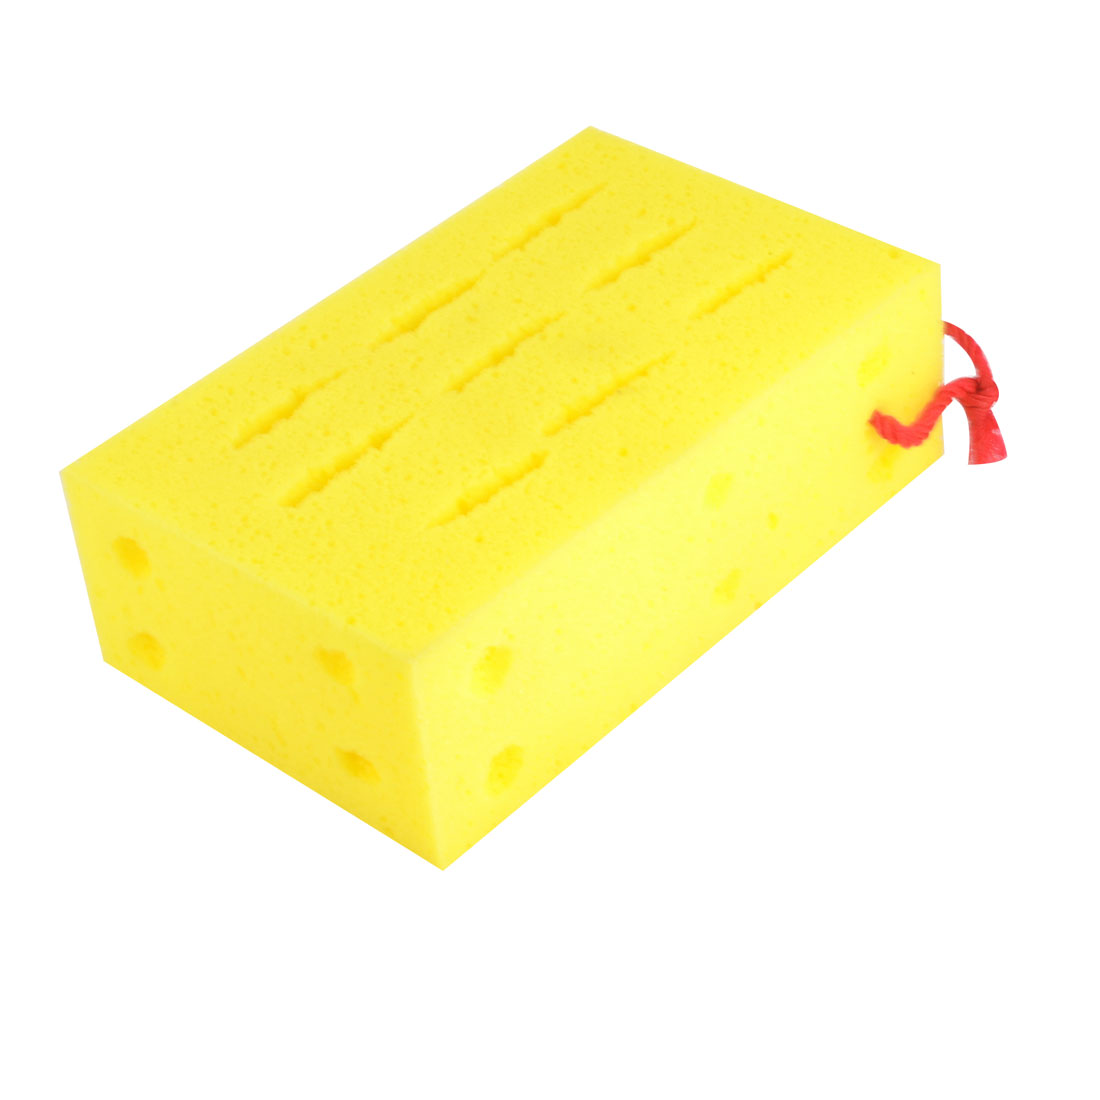 Yellow Rectangular Sponge Pad Mat Cleaning Polishing Tool 18 x 11 x 6cm for Car